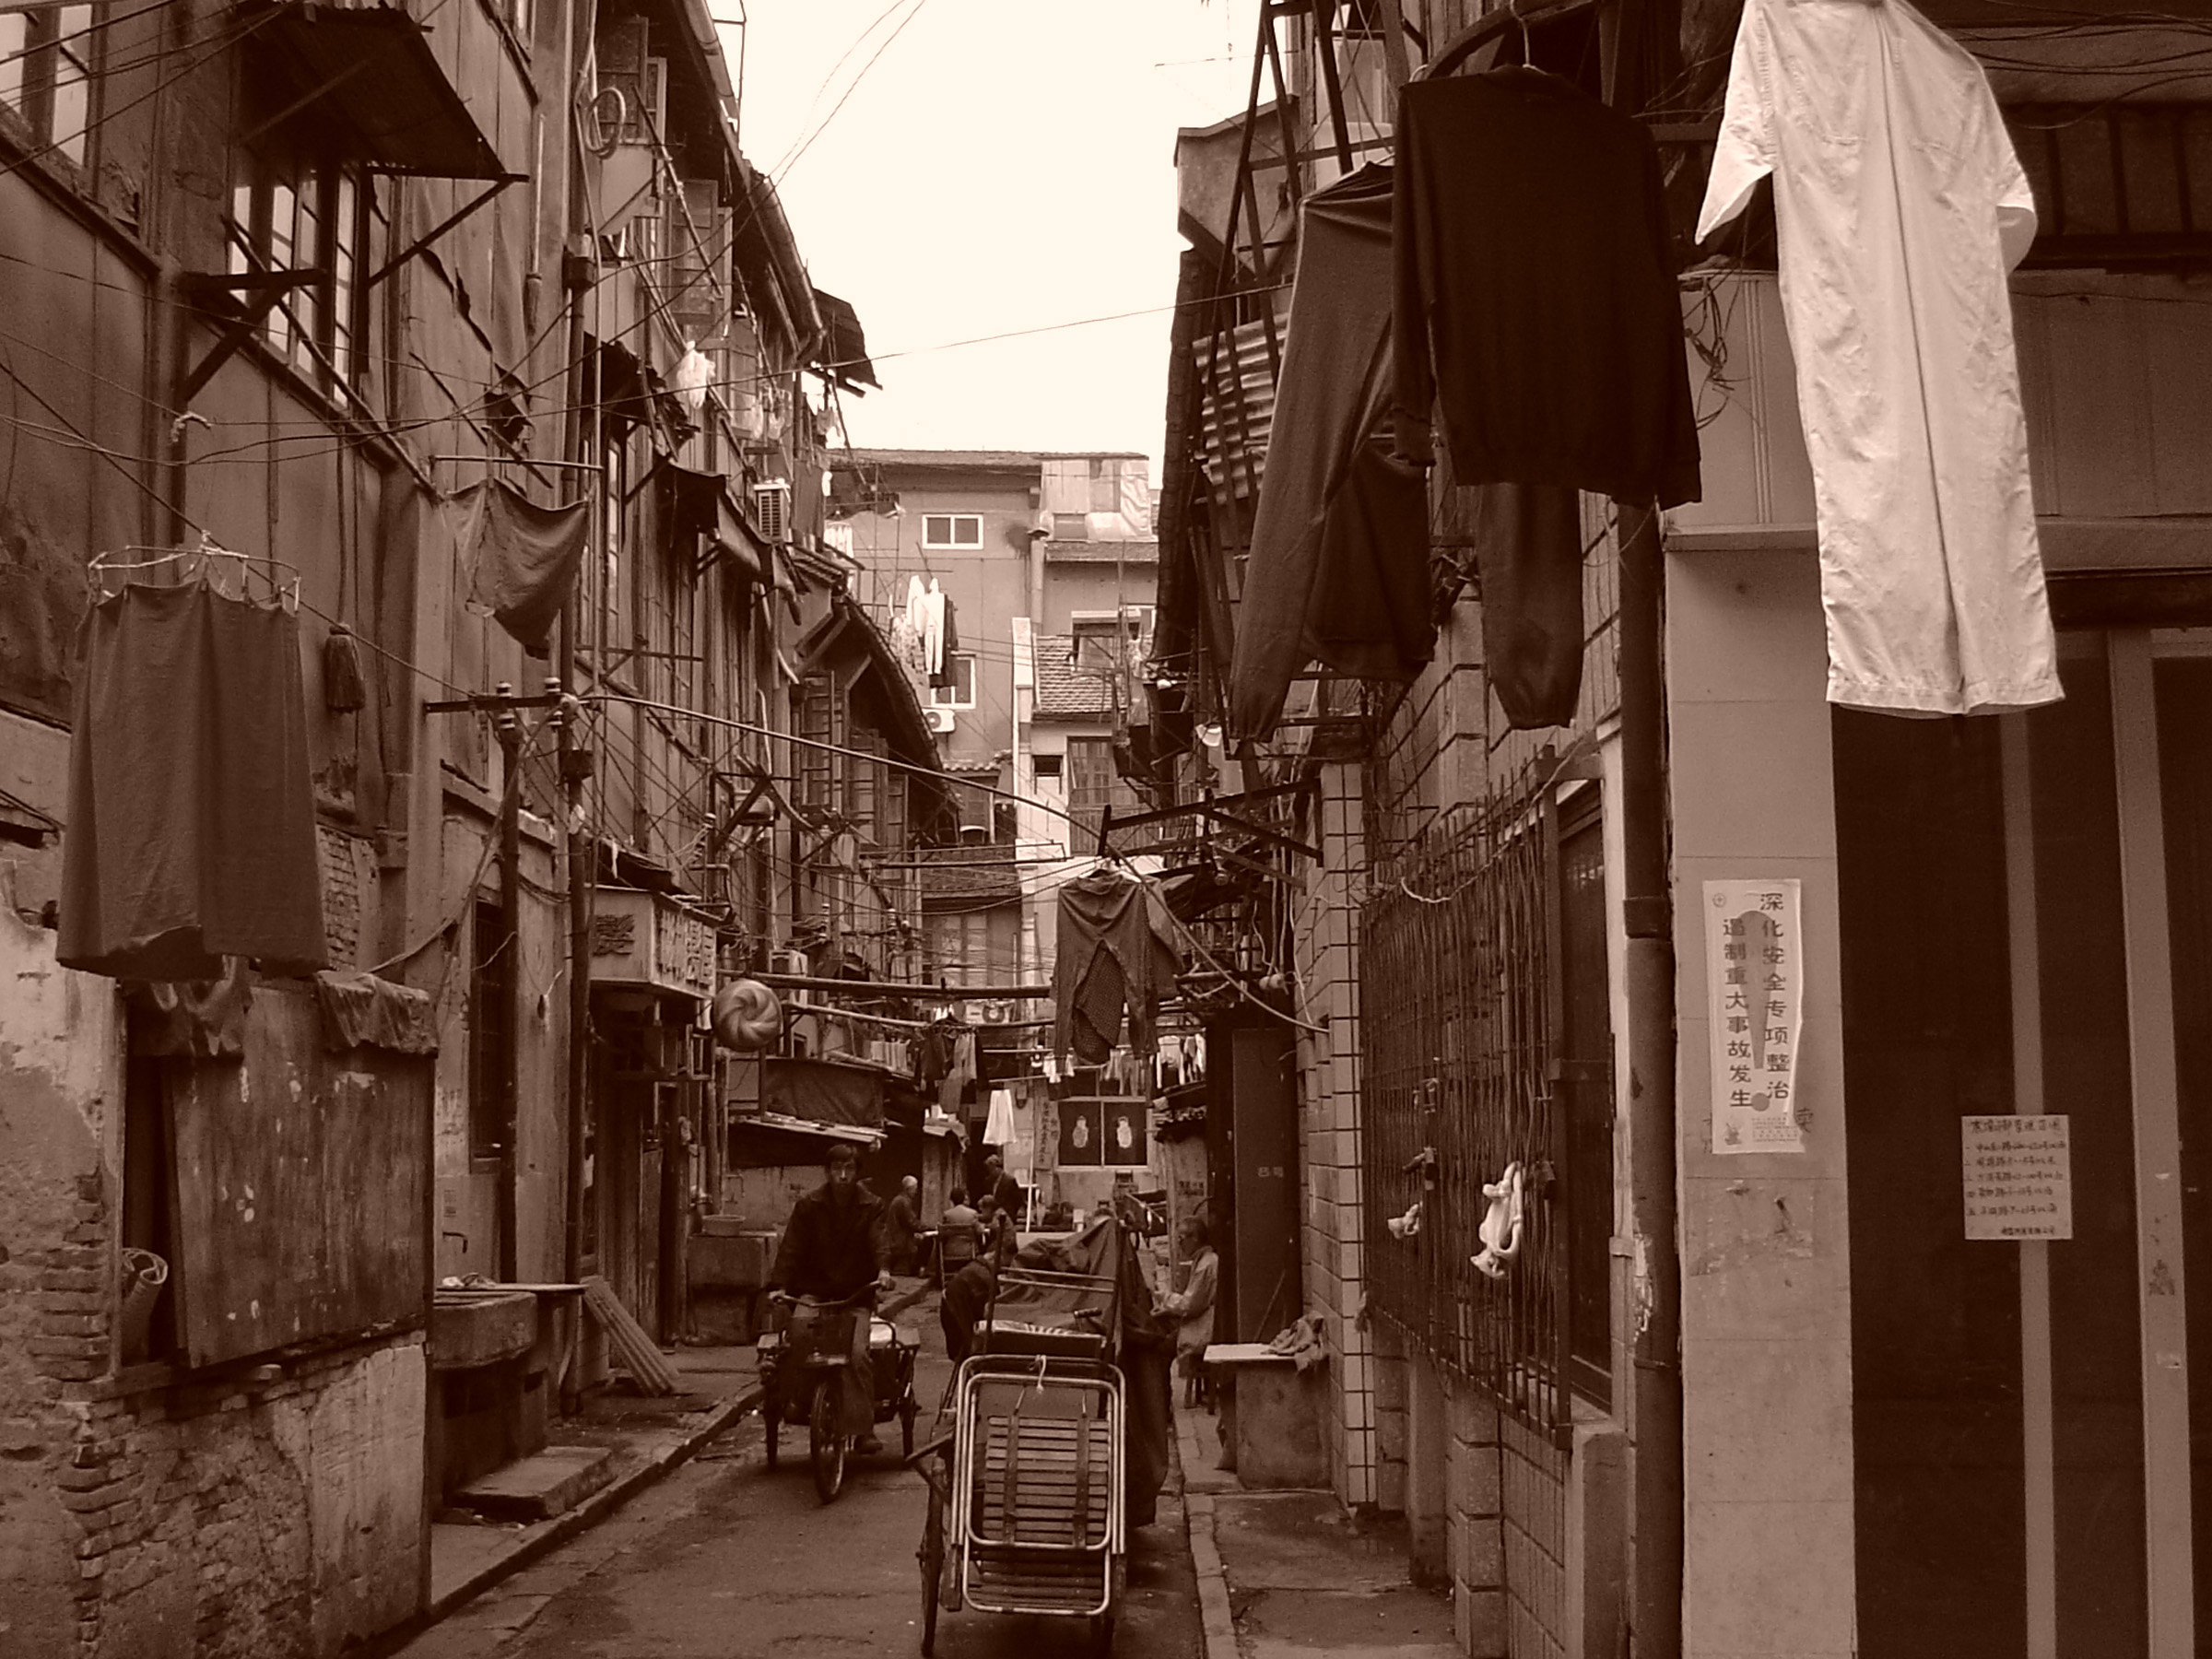 Vintage Ordinary Busy Chinese Street Scene at Poor Area with Big Houses on the Sides.